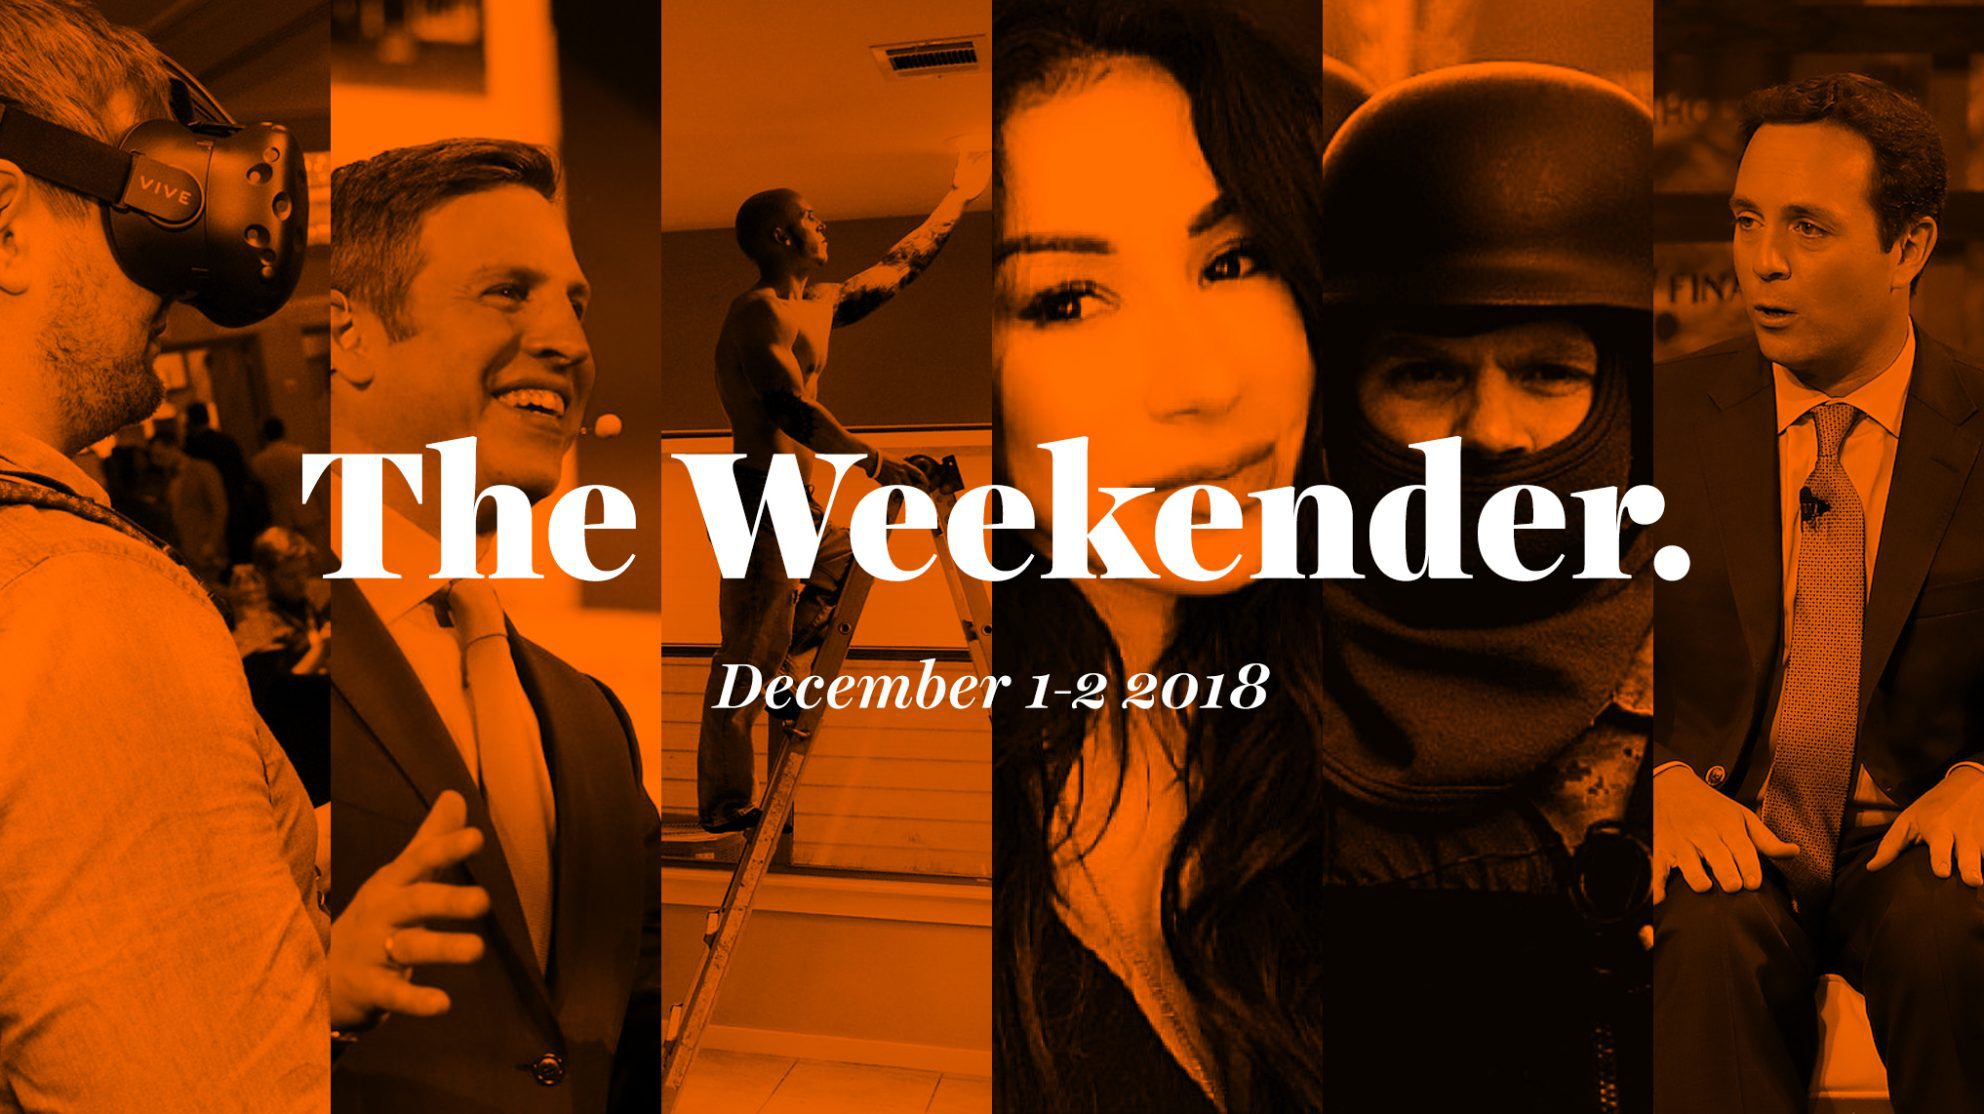 The Inman Weekender, December 1-2, 2018